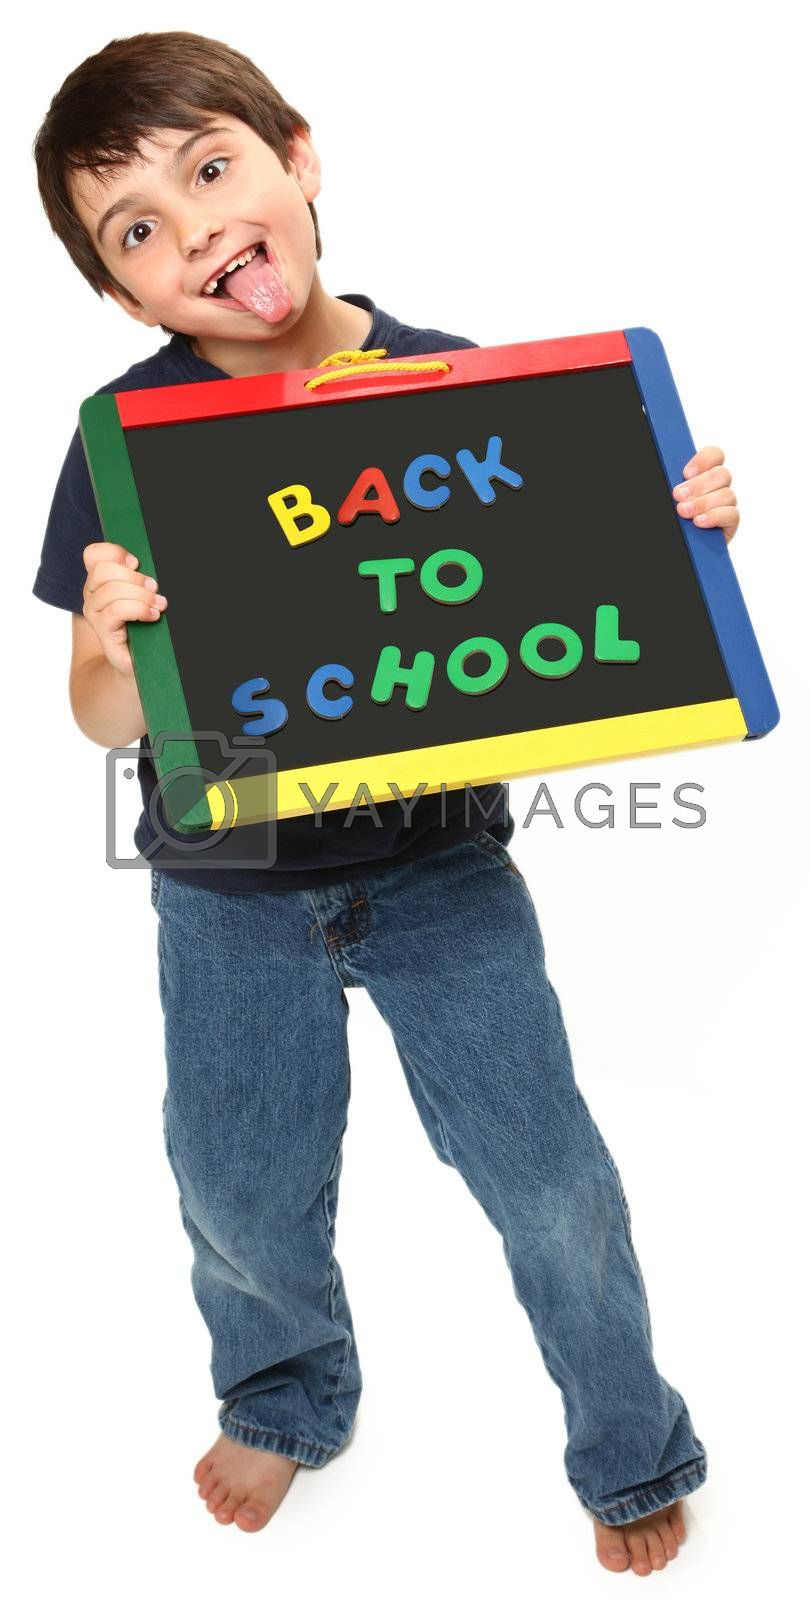 adorable seven year old boy holding back to school magnetic chalk board making silly faces